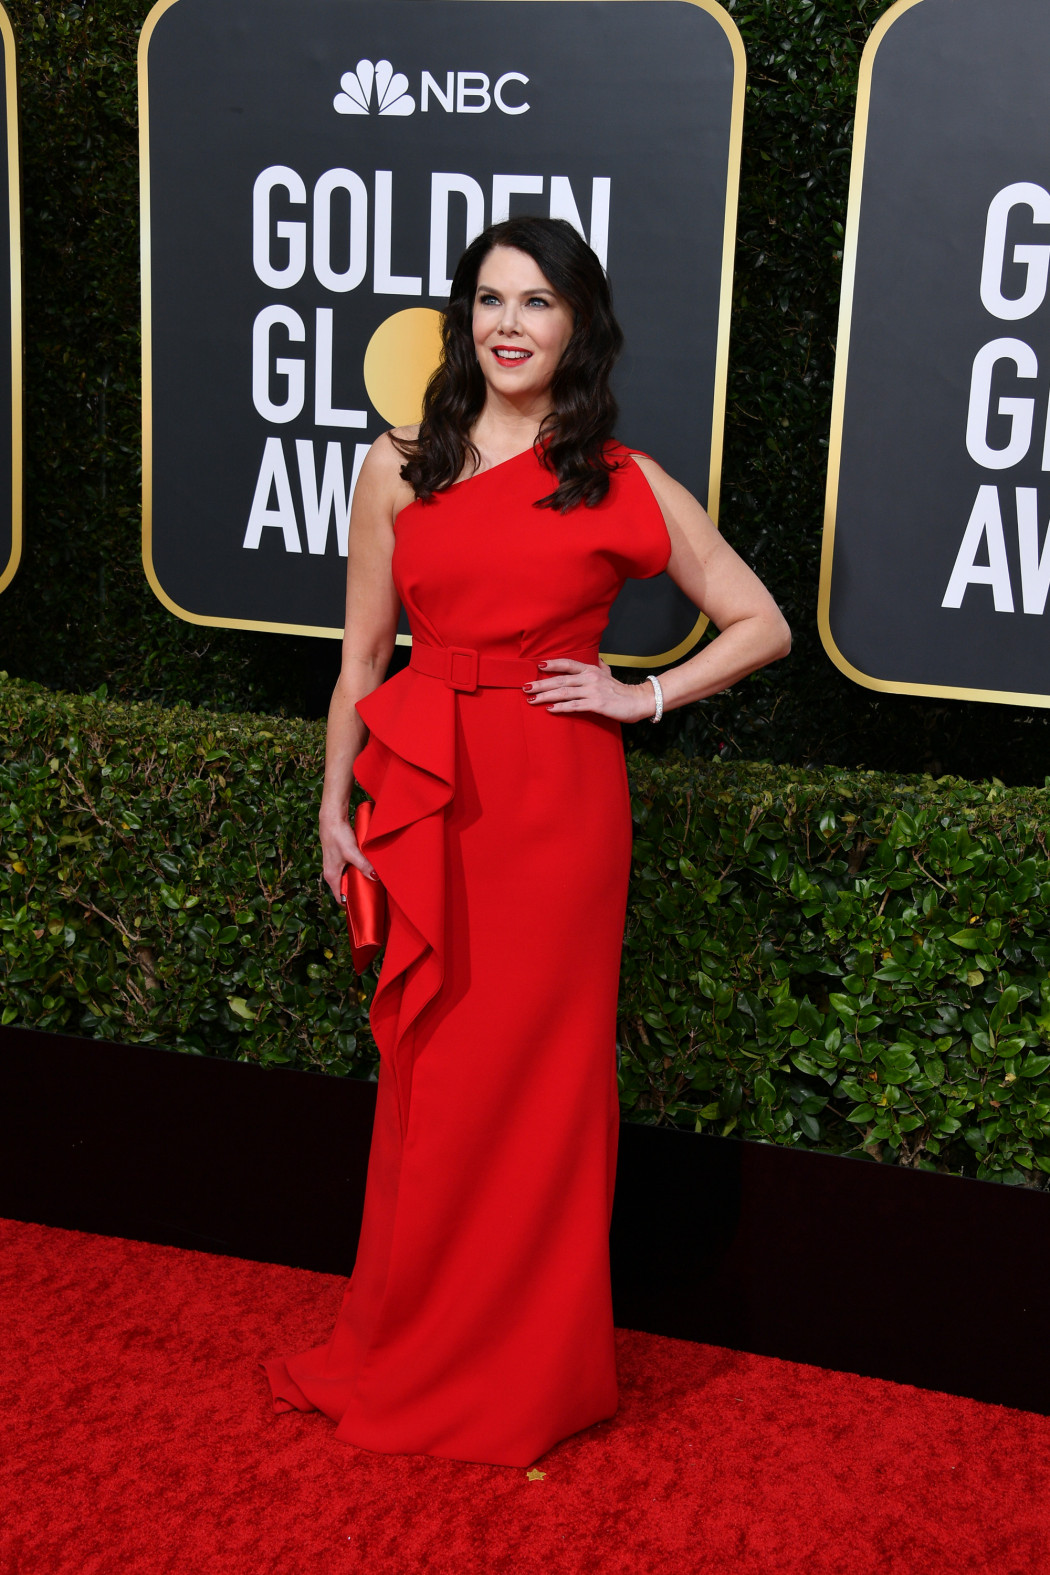 Golden Globes 2020 : les plus beaux looks du tapis rouge - 10